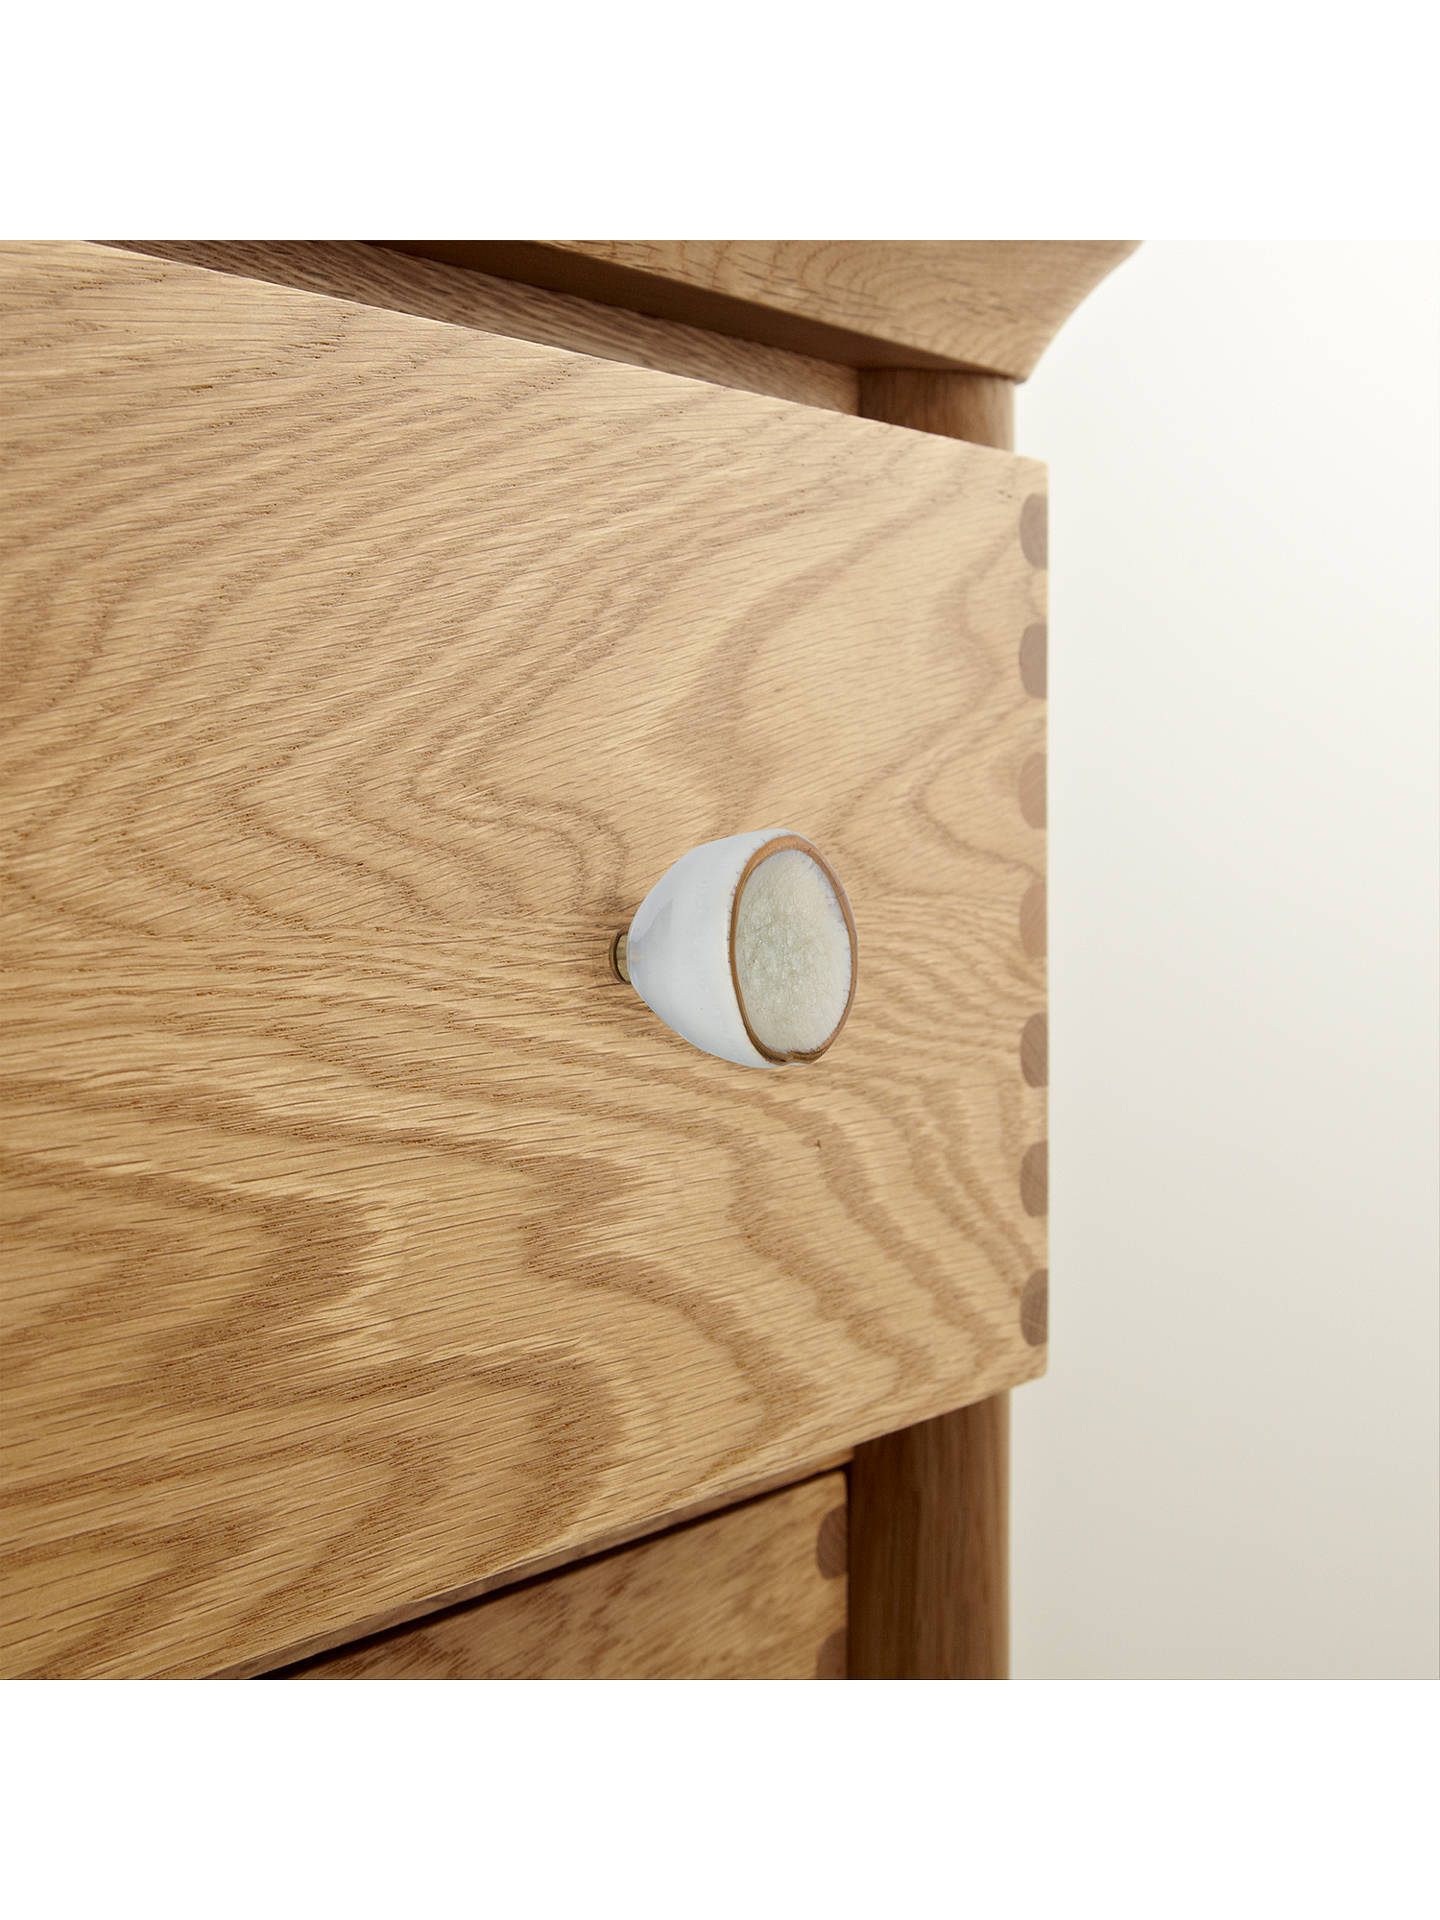 Buy John Lewis & Partners Crackle Ceramic Cupboard Knob, Ivory Online at johnlewis.com